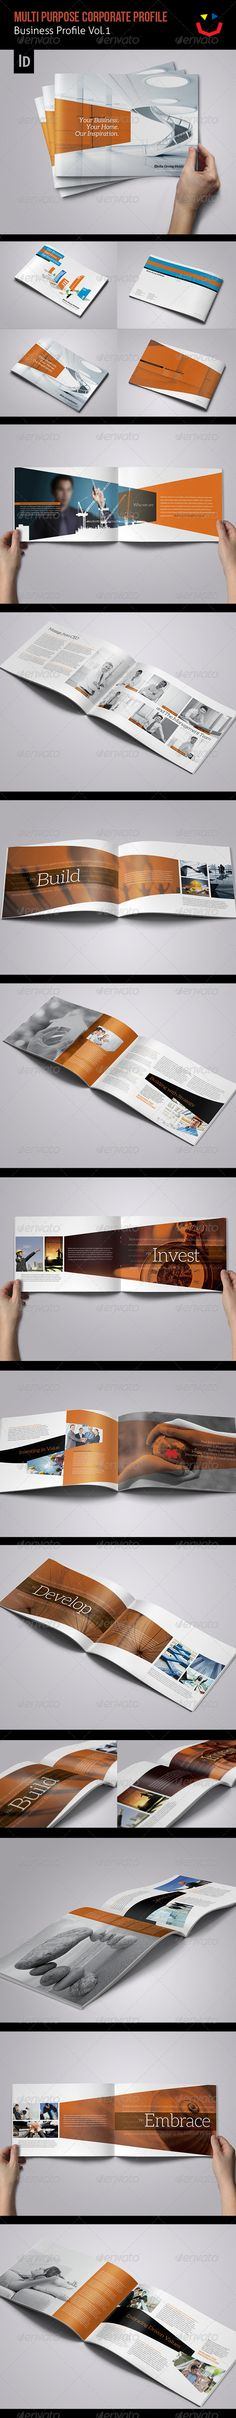 Corporate Business Profile Vol.1 < repinned by Breeze Website Designers